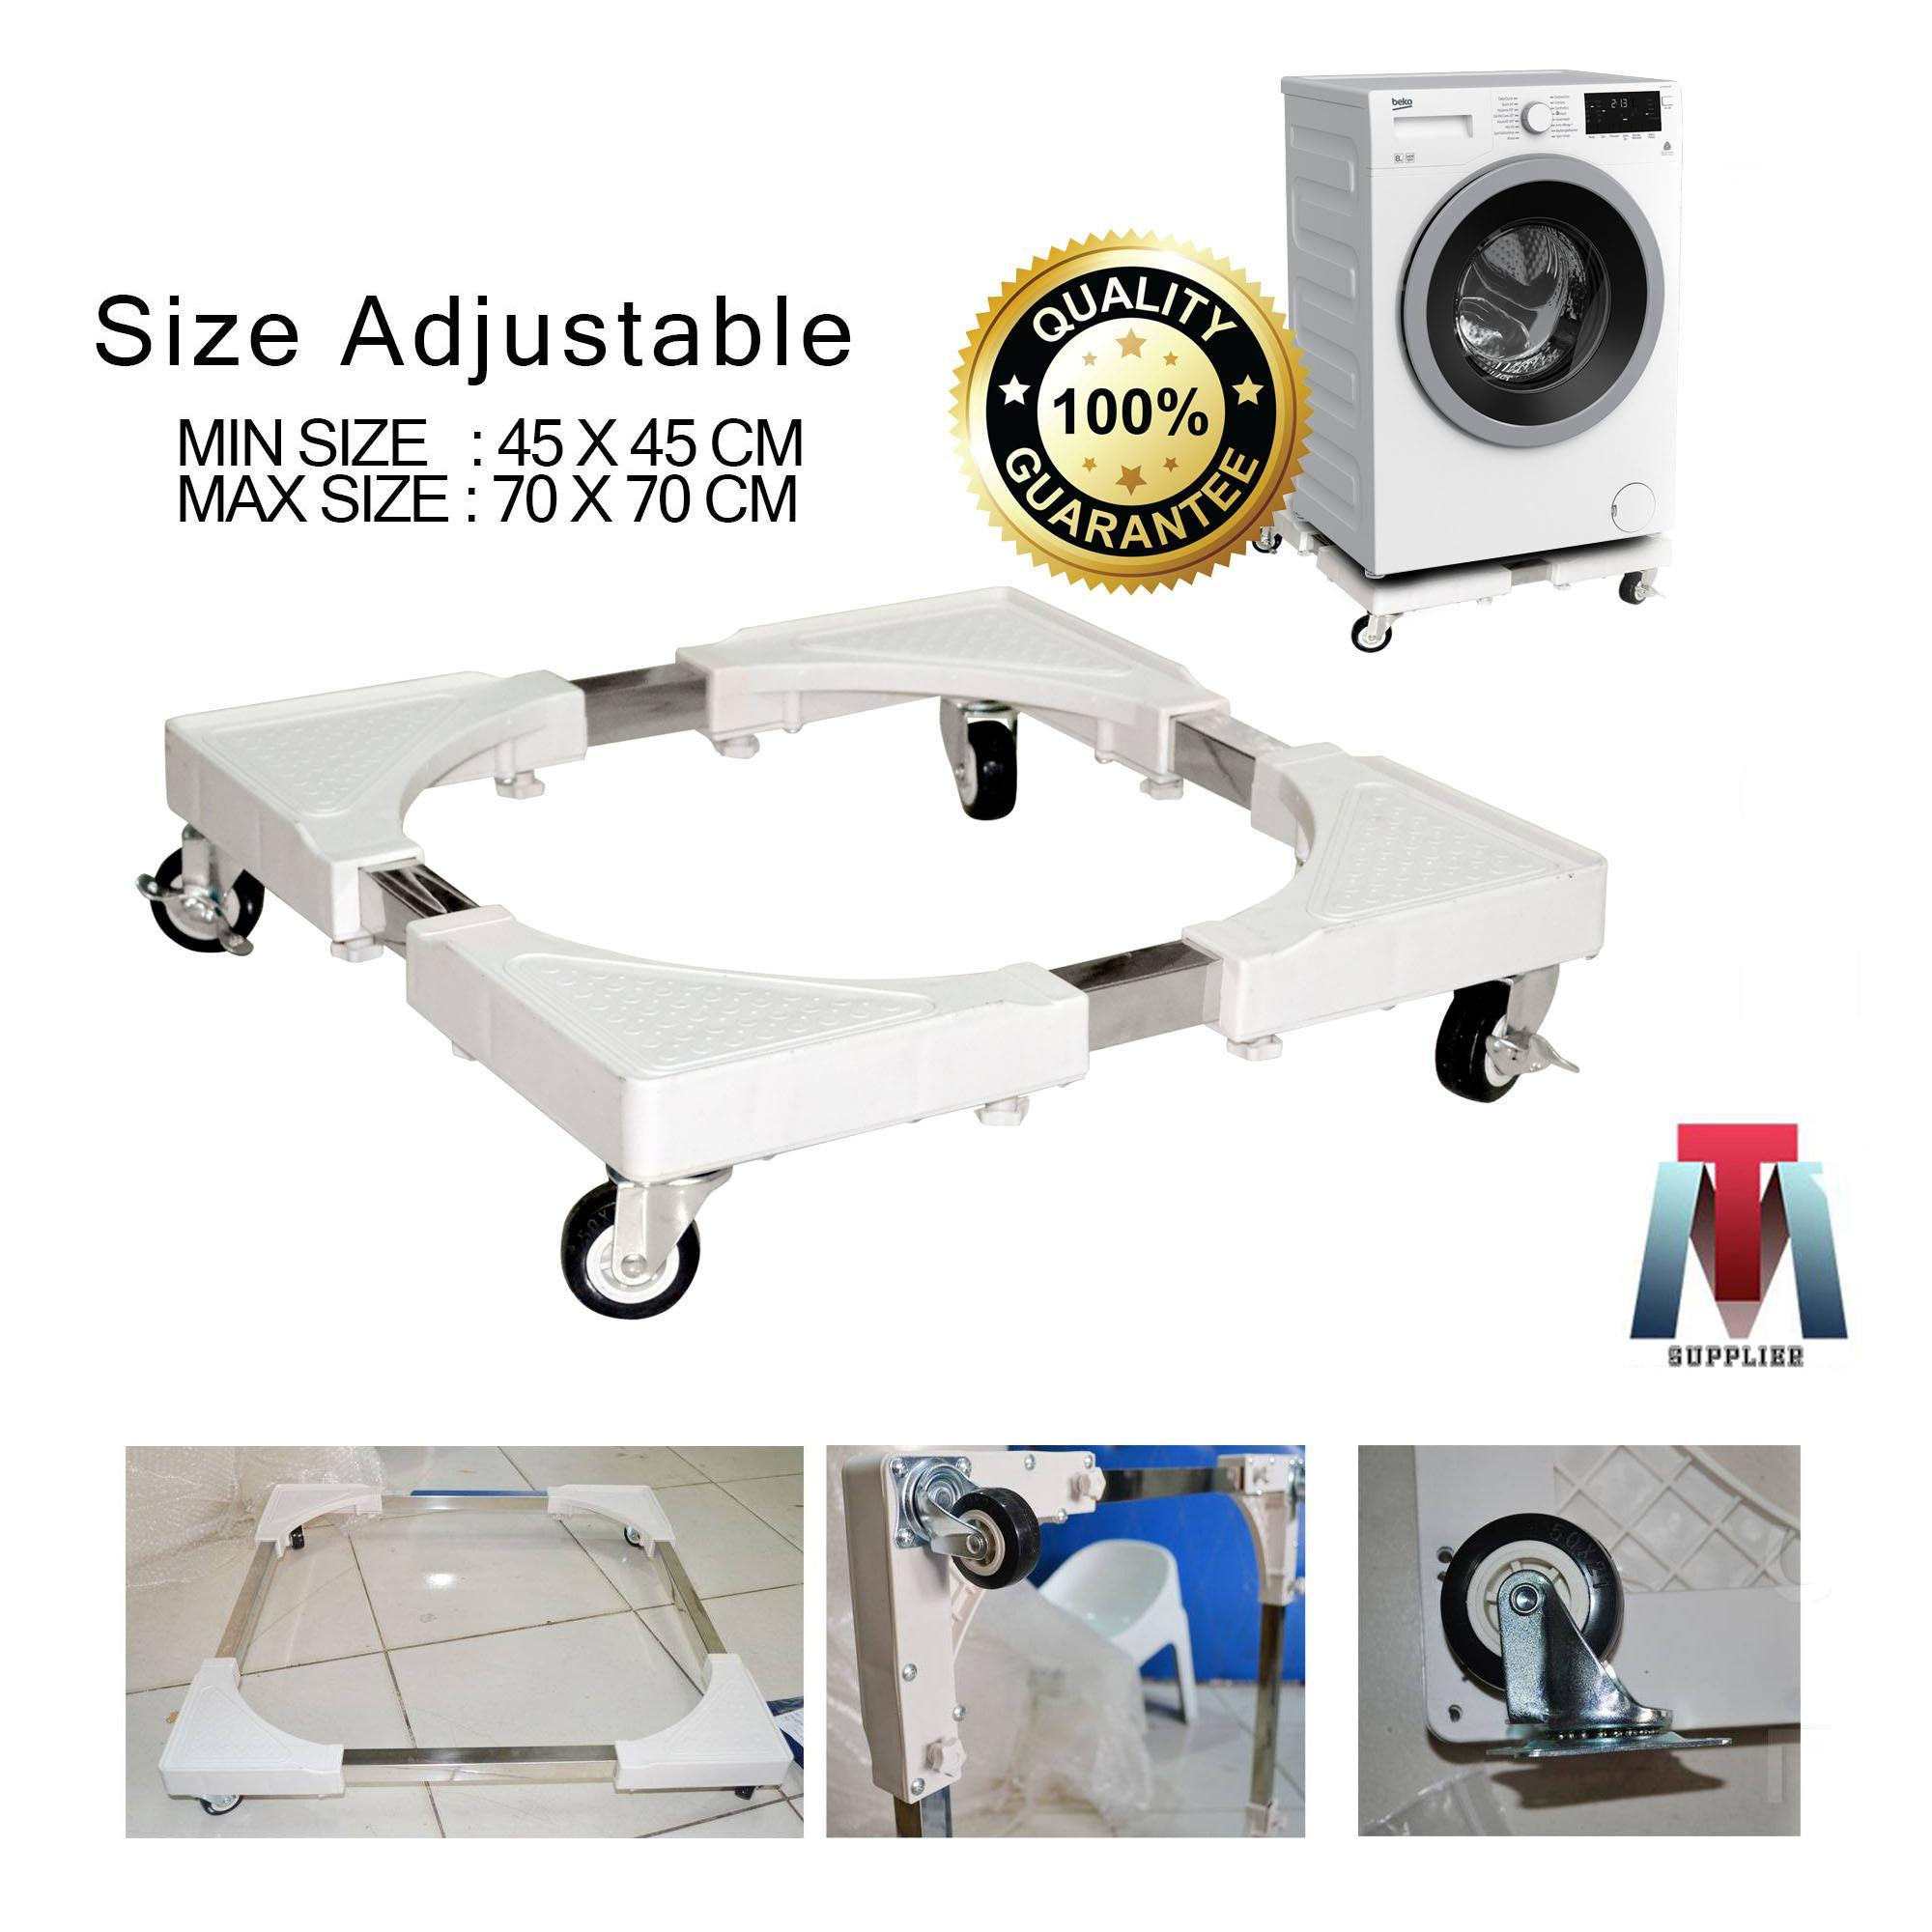 Washer Dryer Accessories For Sale Parts Prices Top Load On Ge Washing Machine Motor Wiring Diagram White Movable And Adjustable Stand Rack Refrigerator